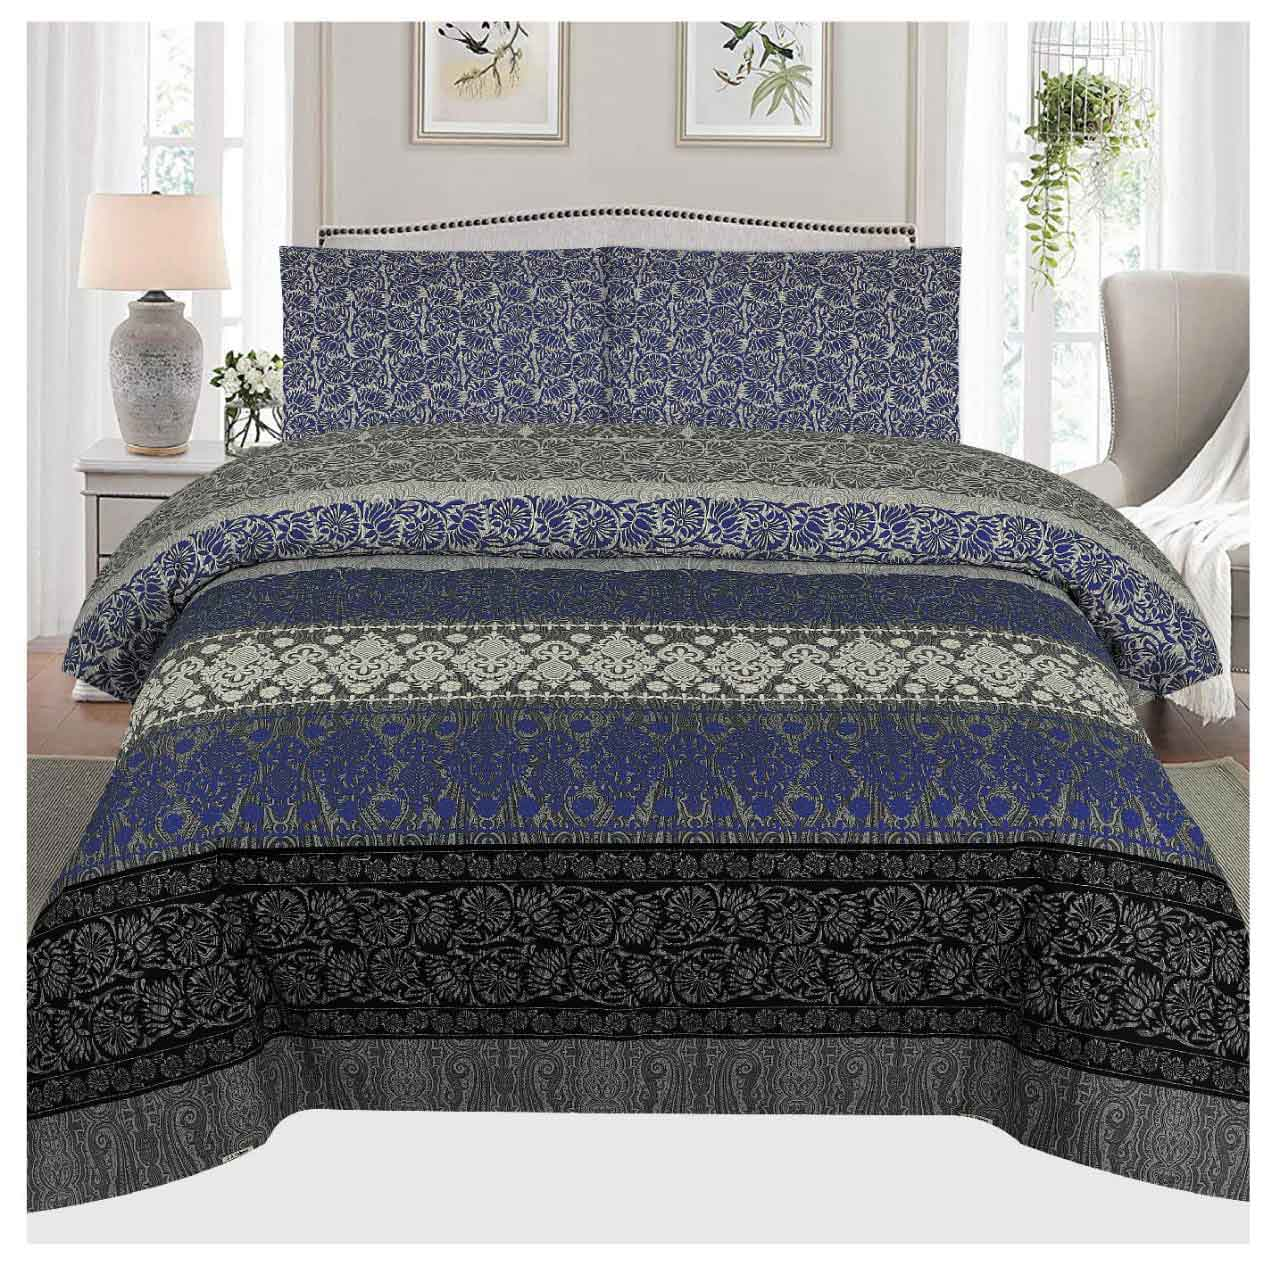 Grace D103 - Cotton PC King Size Bedsheet with 2 Pillow Covers.